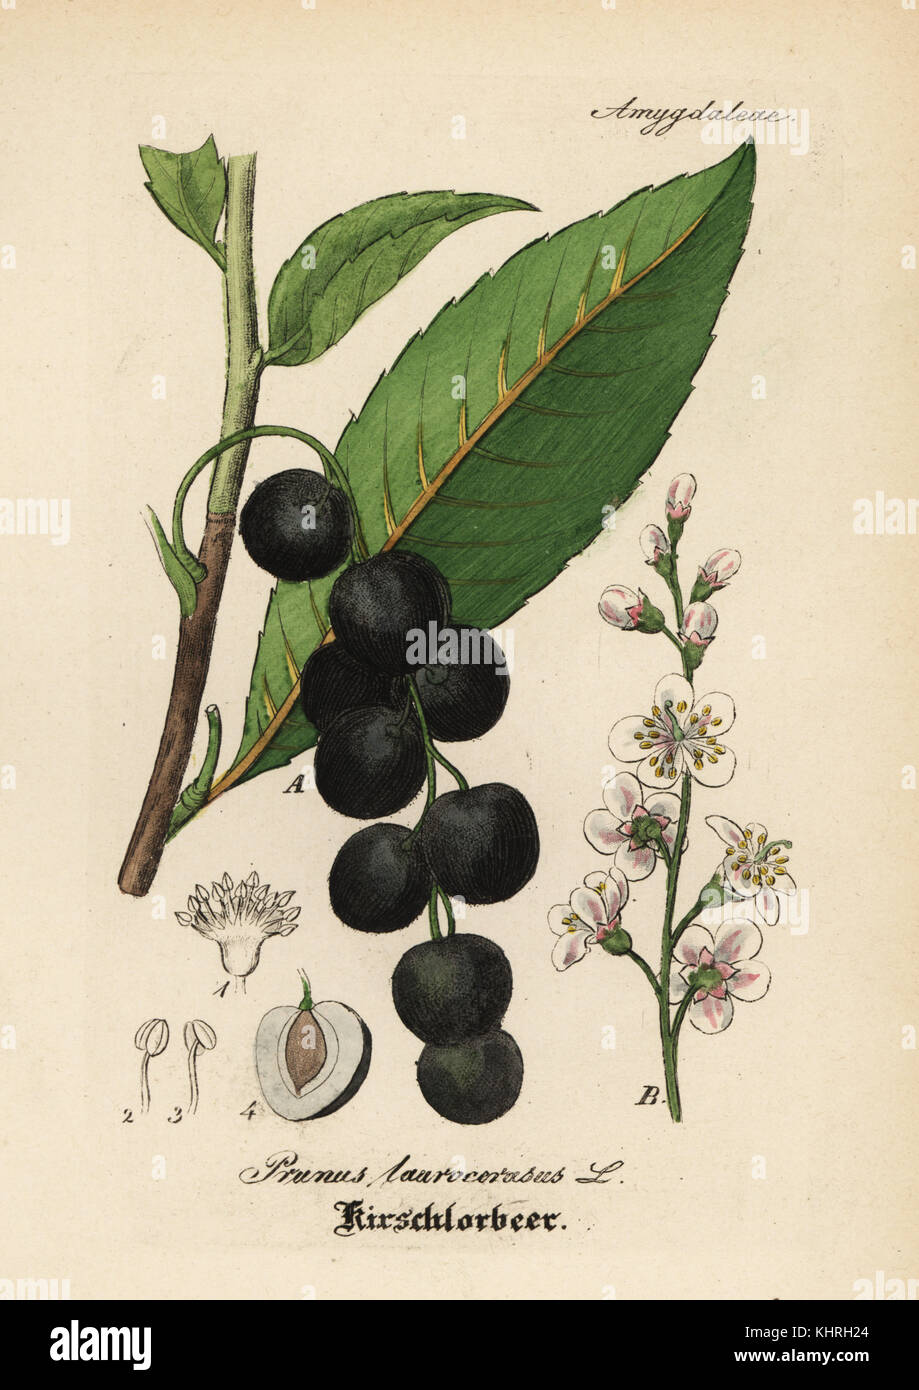 Cherry laurel, Prunus laurocerasus. Handcoloured copperplate engraving from Dr. Willibald Artus' Hand-Atlas - Stock Image